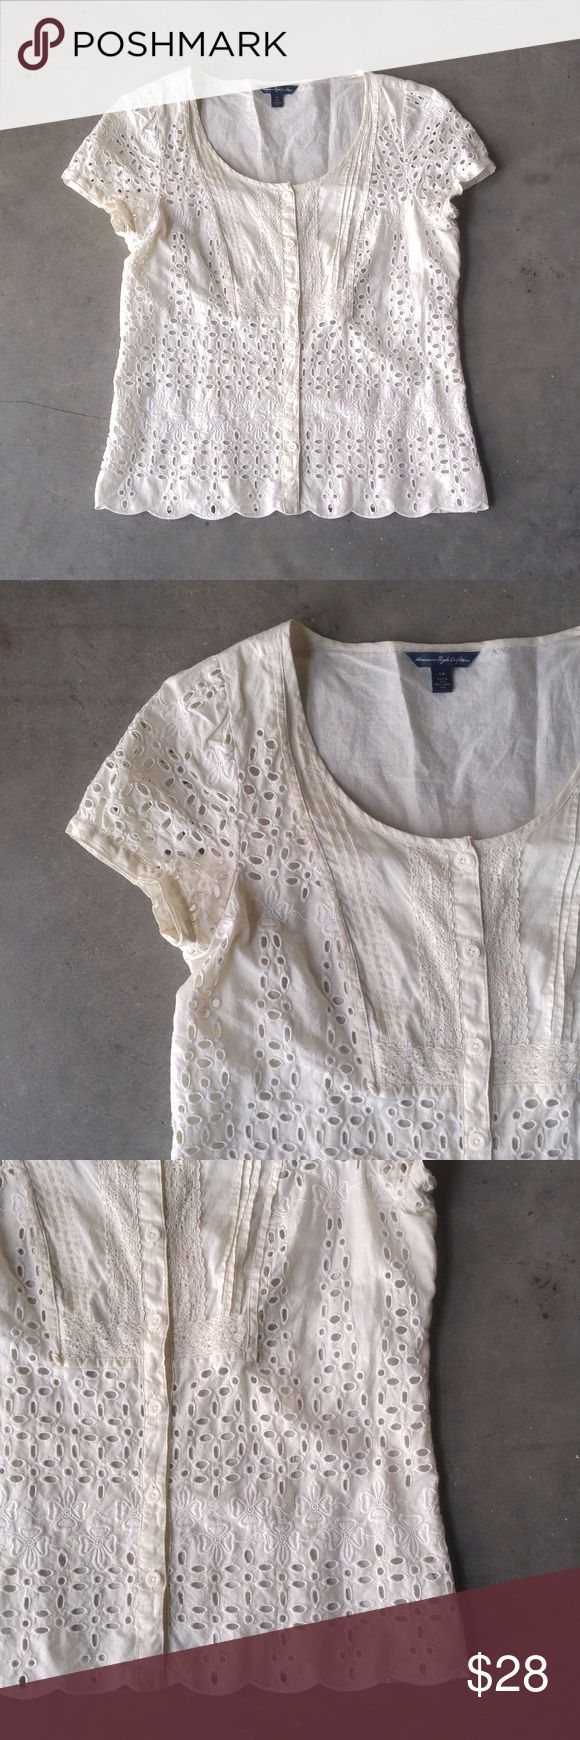 American Eagle Ivory Eyelet Top American Eagle Outfitters top, size small, in excellent condition! Adorable and dainty, this top has eyelets throughout the front (lining across chest but not below it). Features cap sleeves, a scoop neckline, scalloped edge bottom hem, and buttons down the front. Color is a slight off-white ivory color. Very slight pit wear/discoloration. No trades. No modeling. Make a reasonable offer. Thanks! American Eagle Outfitters Tops Blouses